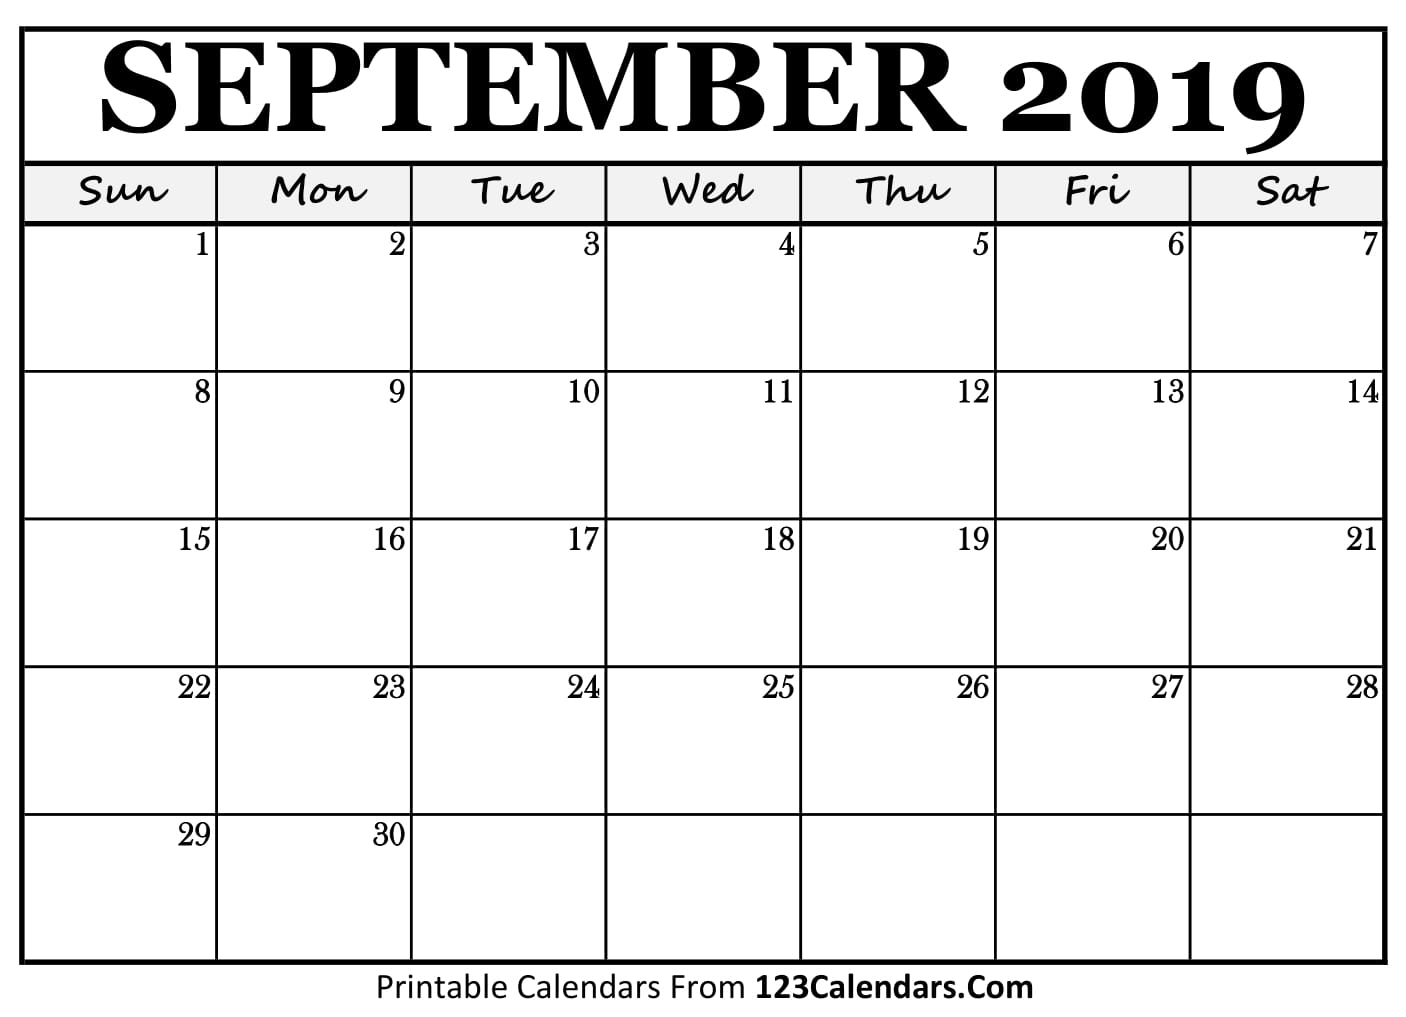 September 2019 Printable Calendar | 123Calendars regarding Calender September 2019 To August 2020